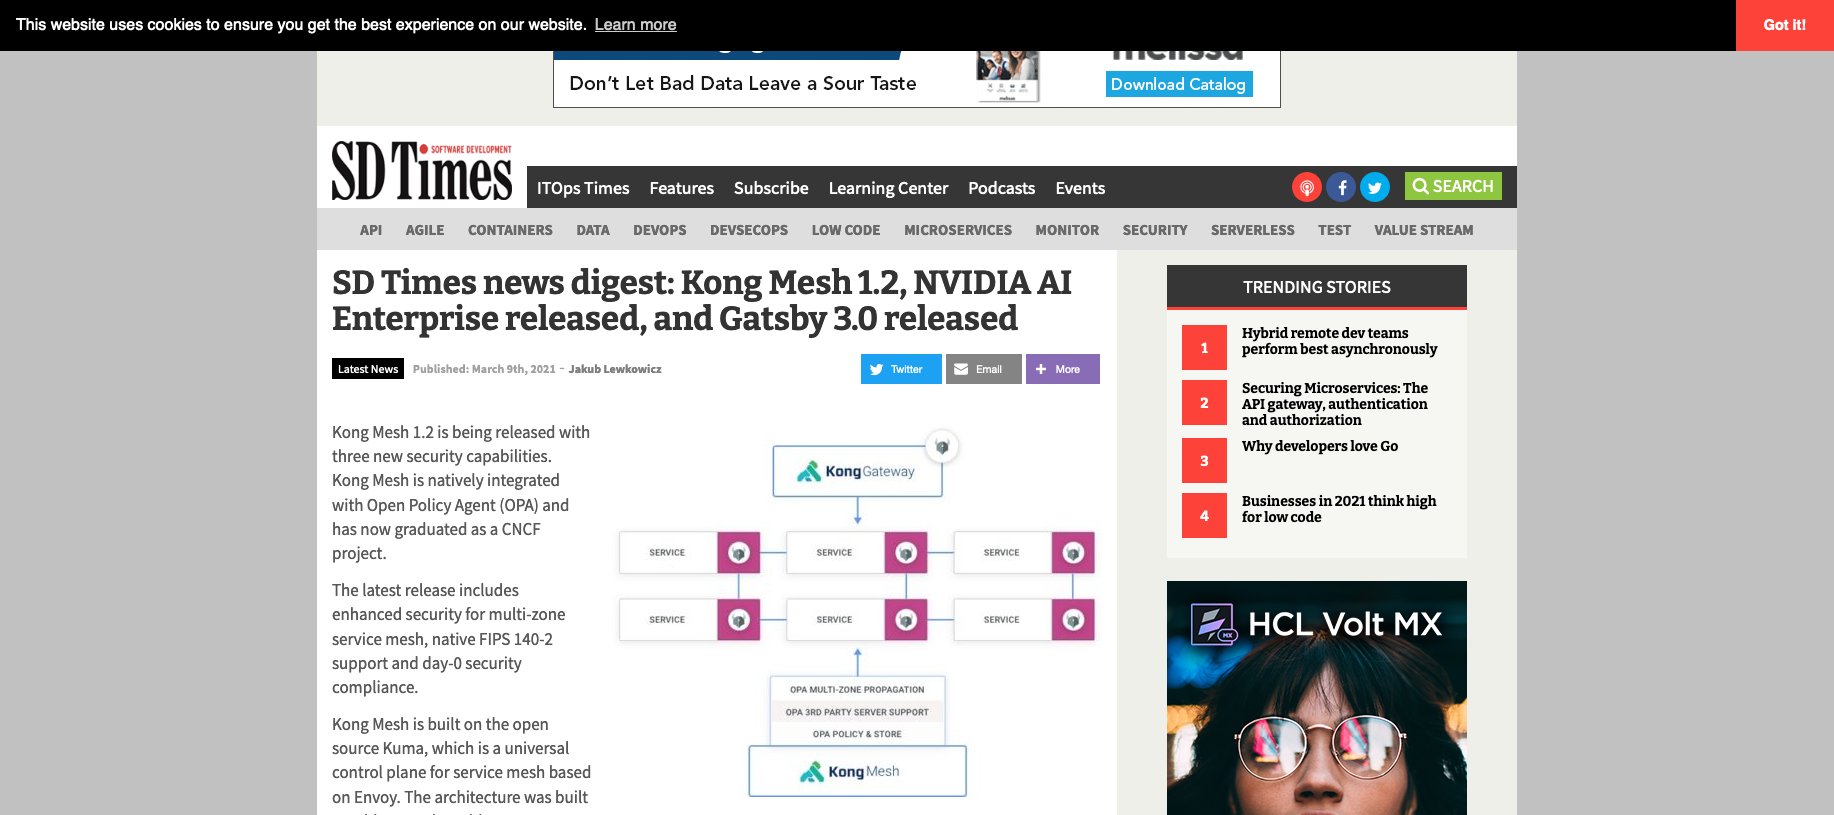 SD Times news digest: Kong Mesh 1.2, NVIDIA AI Enterprise released, and Gatsby 3.0 released